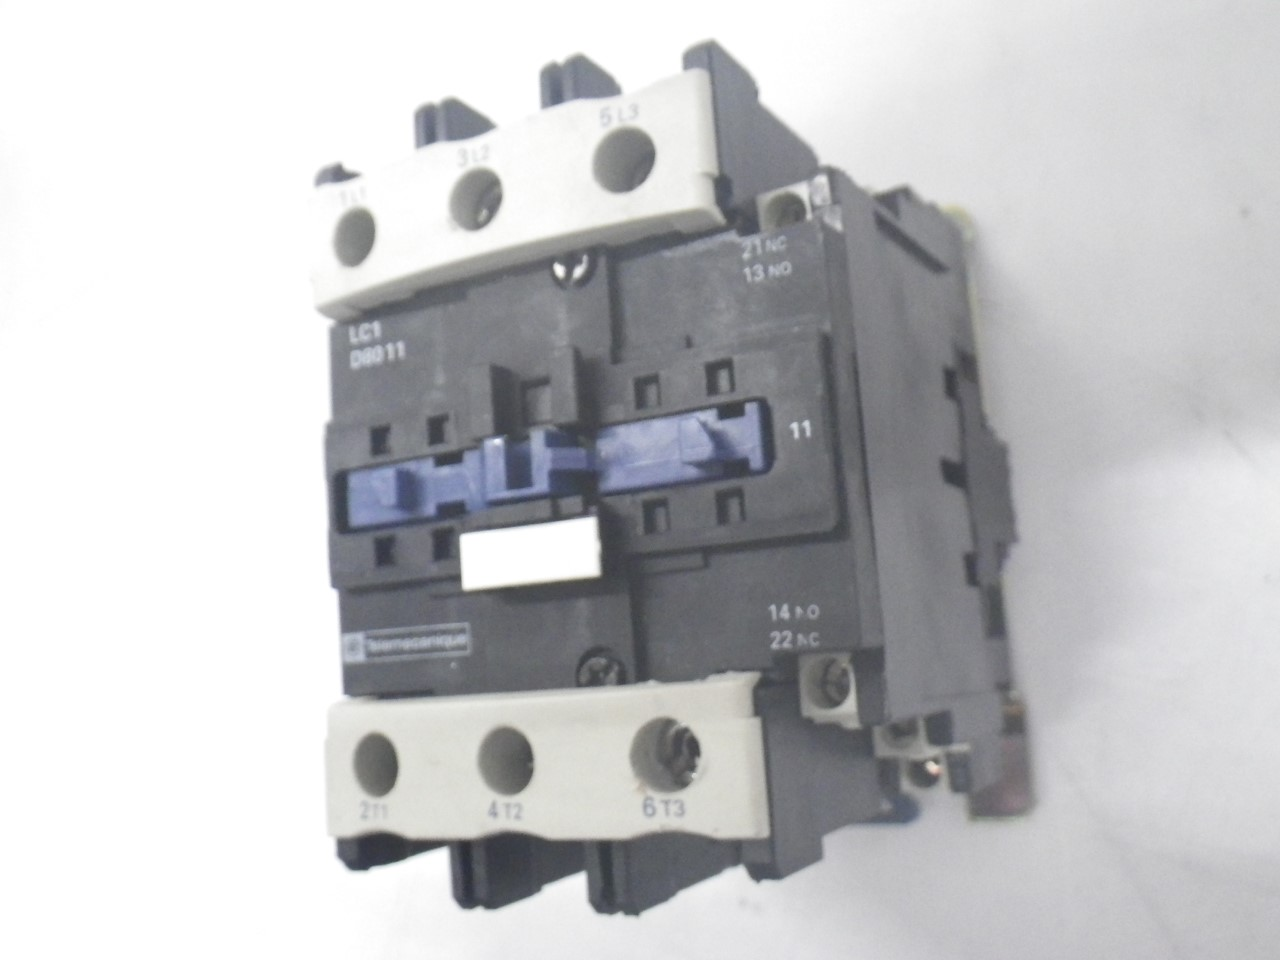 IMGP8343125A, 600V (21)LC1D8011 Telemecanique Contactor Magnetic Power Relay 125a, 600v (Used Tested)